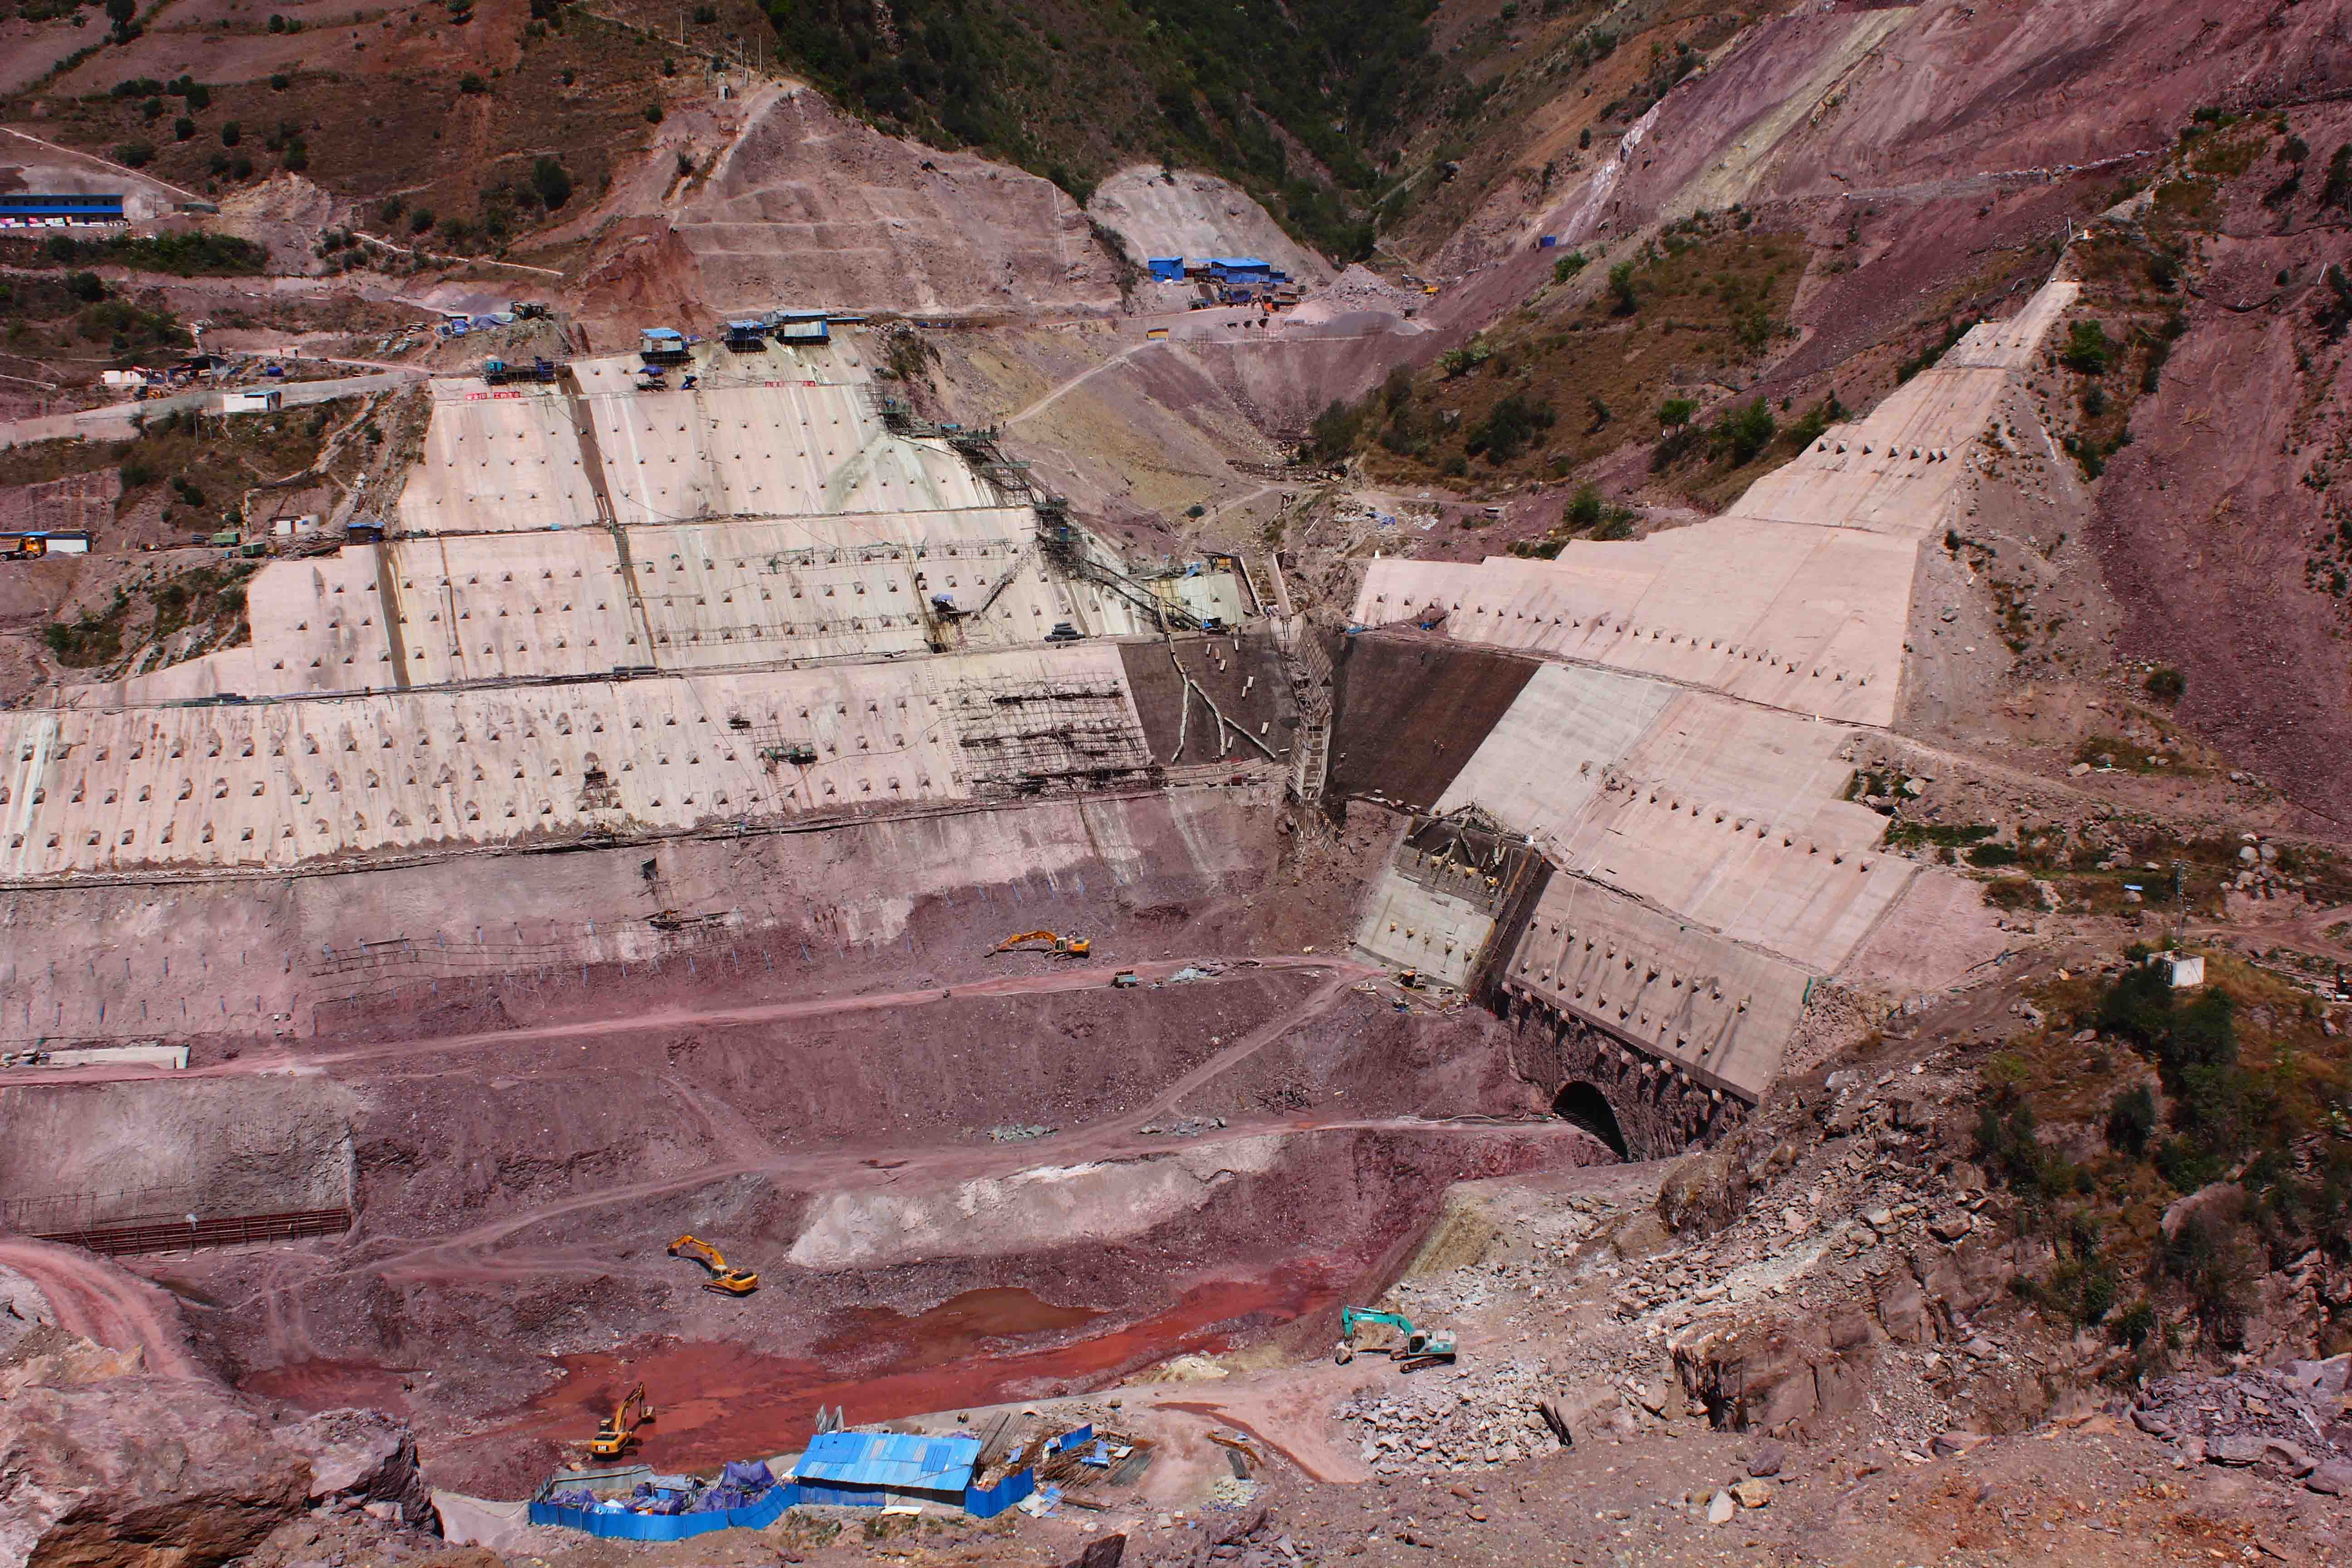 The Huangdeng Hydro Power Station on the Lancang River is currently under construction by HYDROCHINA Kunming (KHIDI) using an integrated model-based approach. Source: http://commons.wikimedia.org/wiki/, author Zhangmoon618